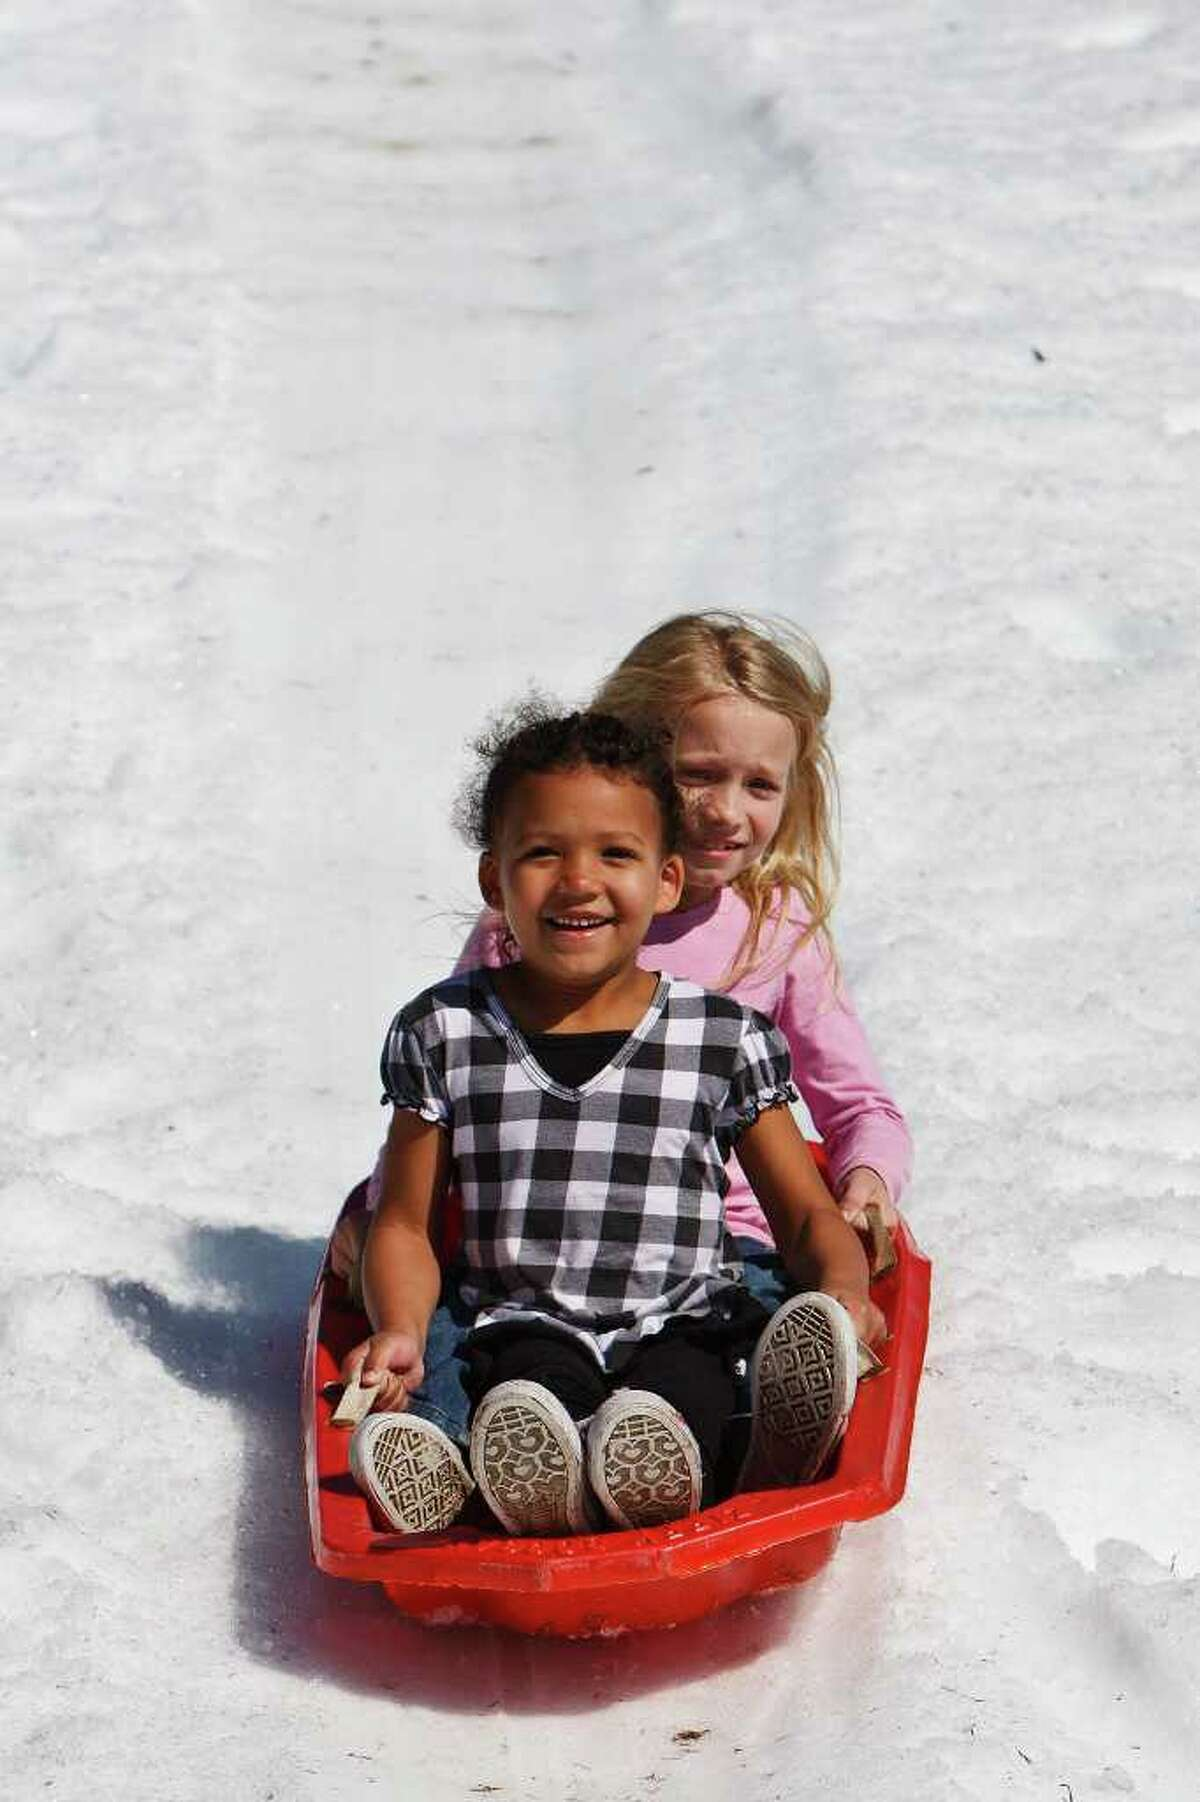 Monica Brooks (5) and Melissa Brooks (7) ride a sled down the Pure Party Ice Snow Slide during the Castle Hill's Homeowners Association's 4th annual Snow Day at the Commons of Castle Hills on Jan. 30, 2011. Photo by Marvin Pfeiffer